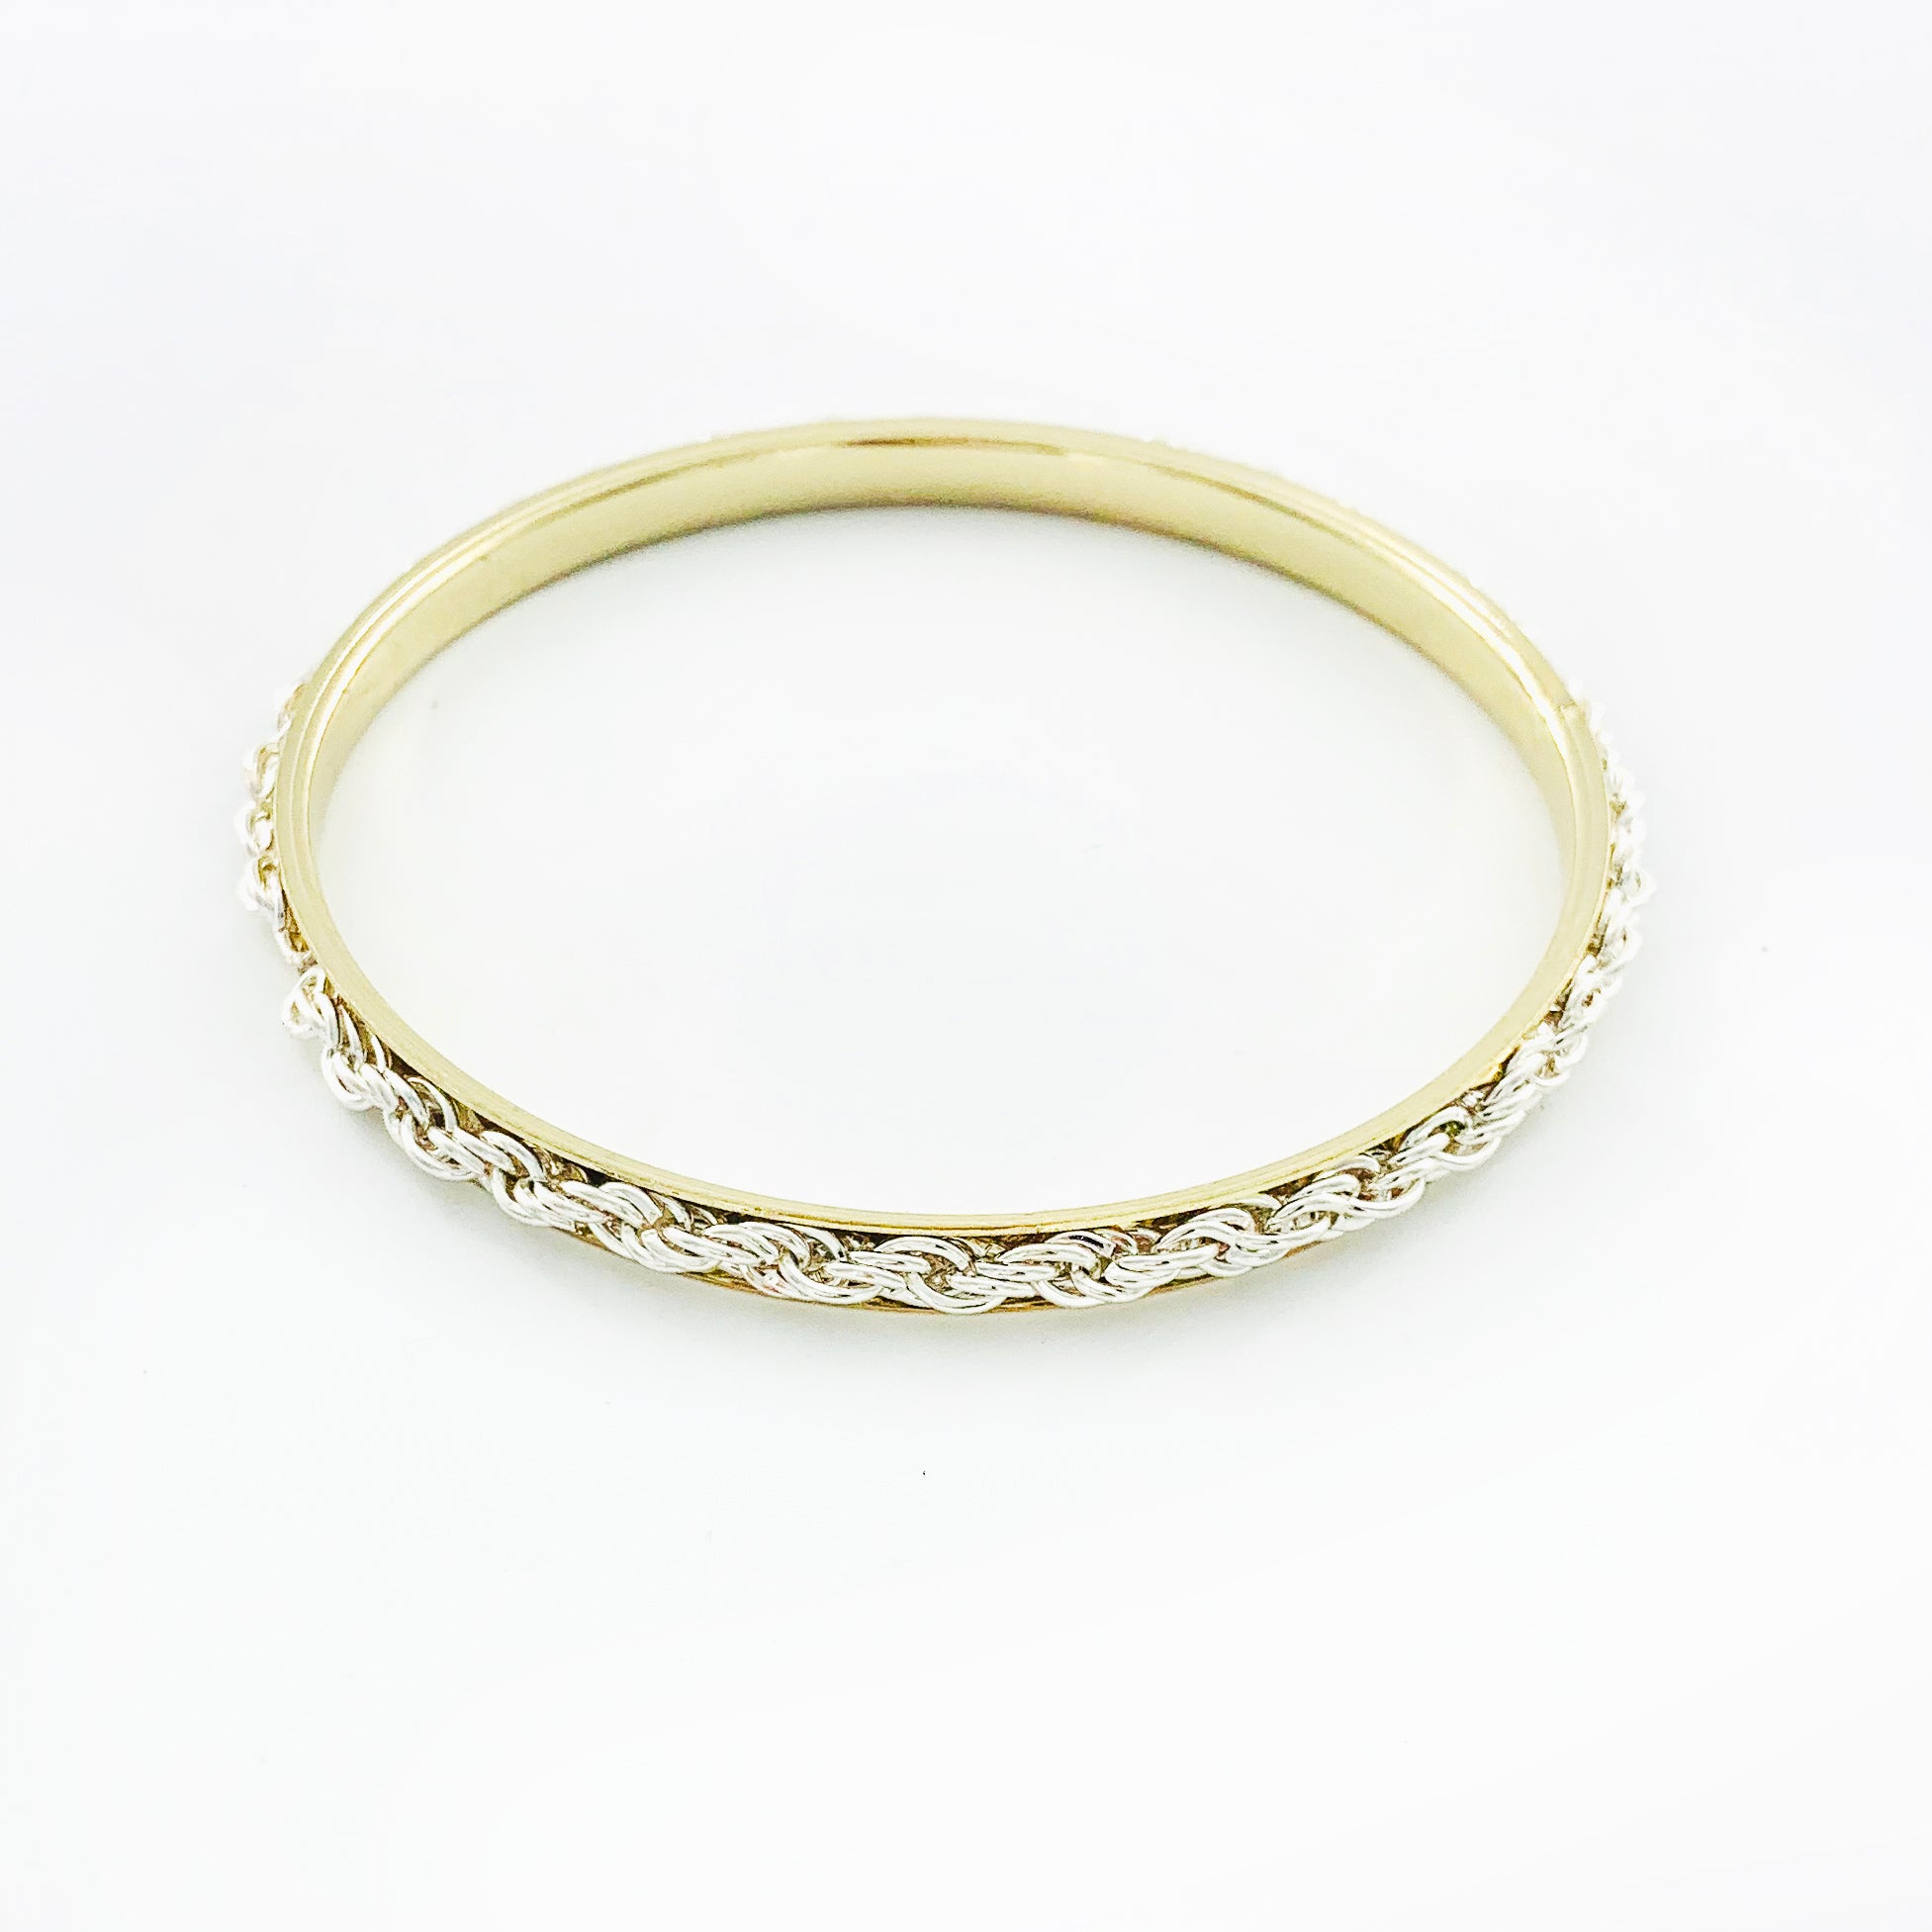 Silver braided chain on thin gold bangle